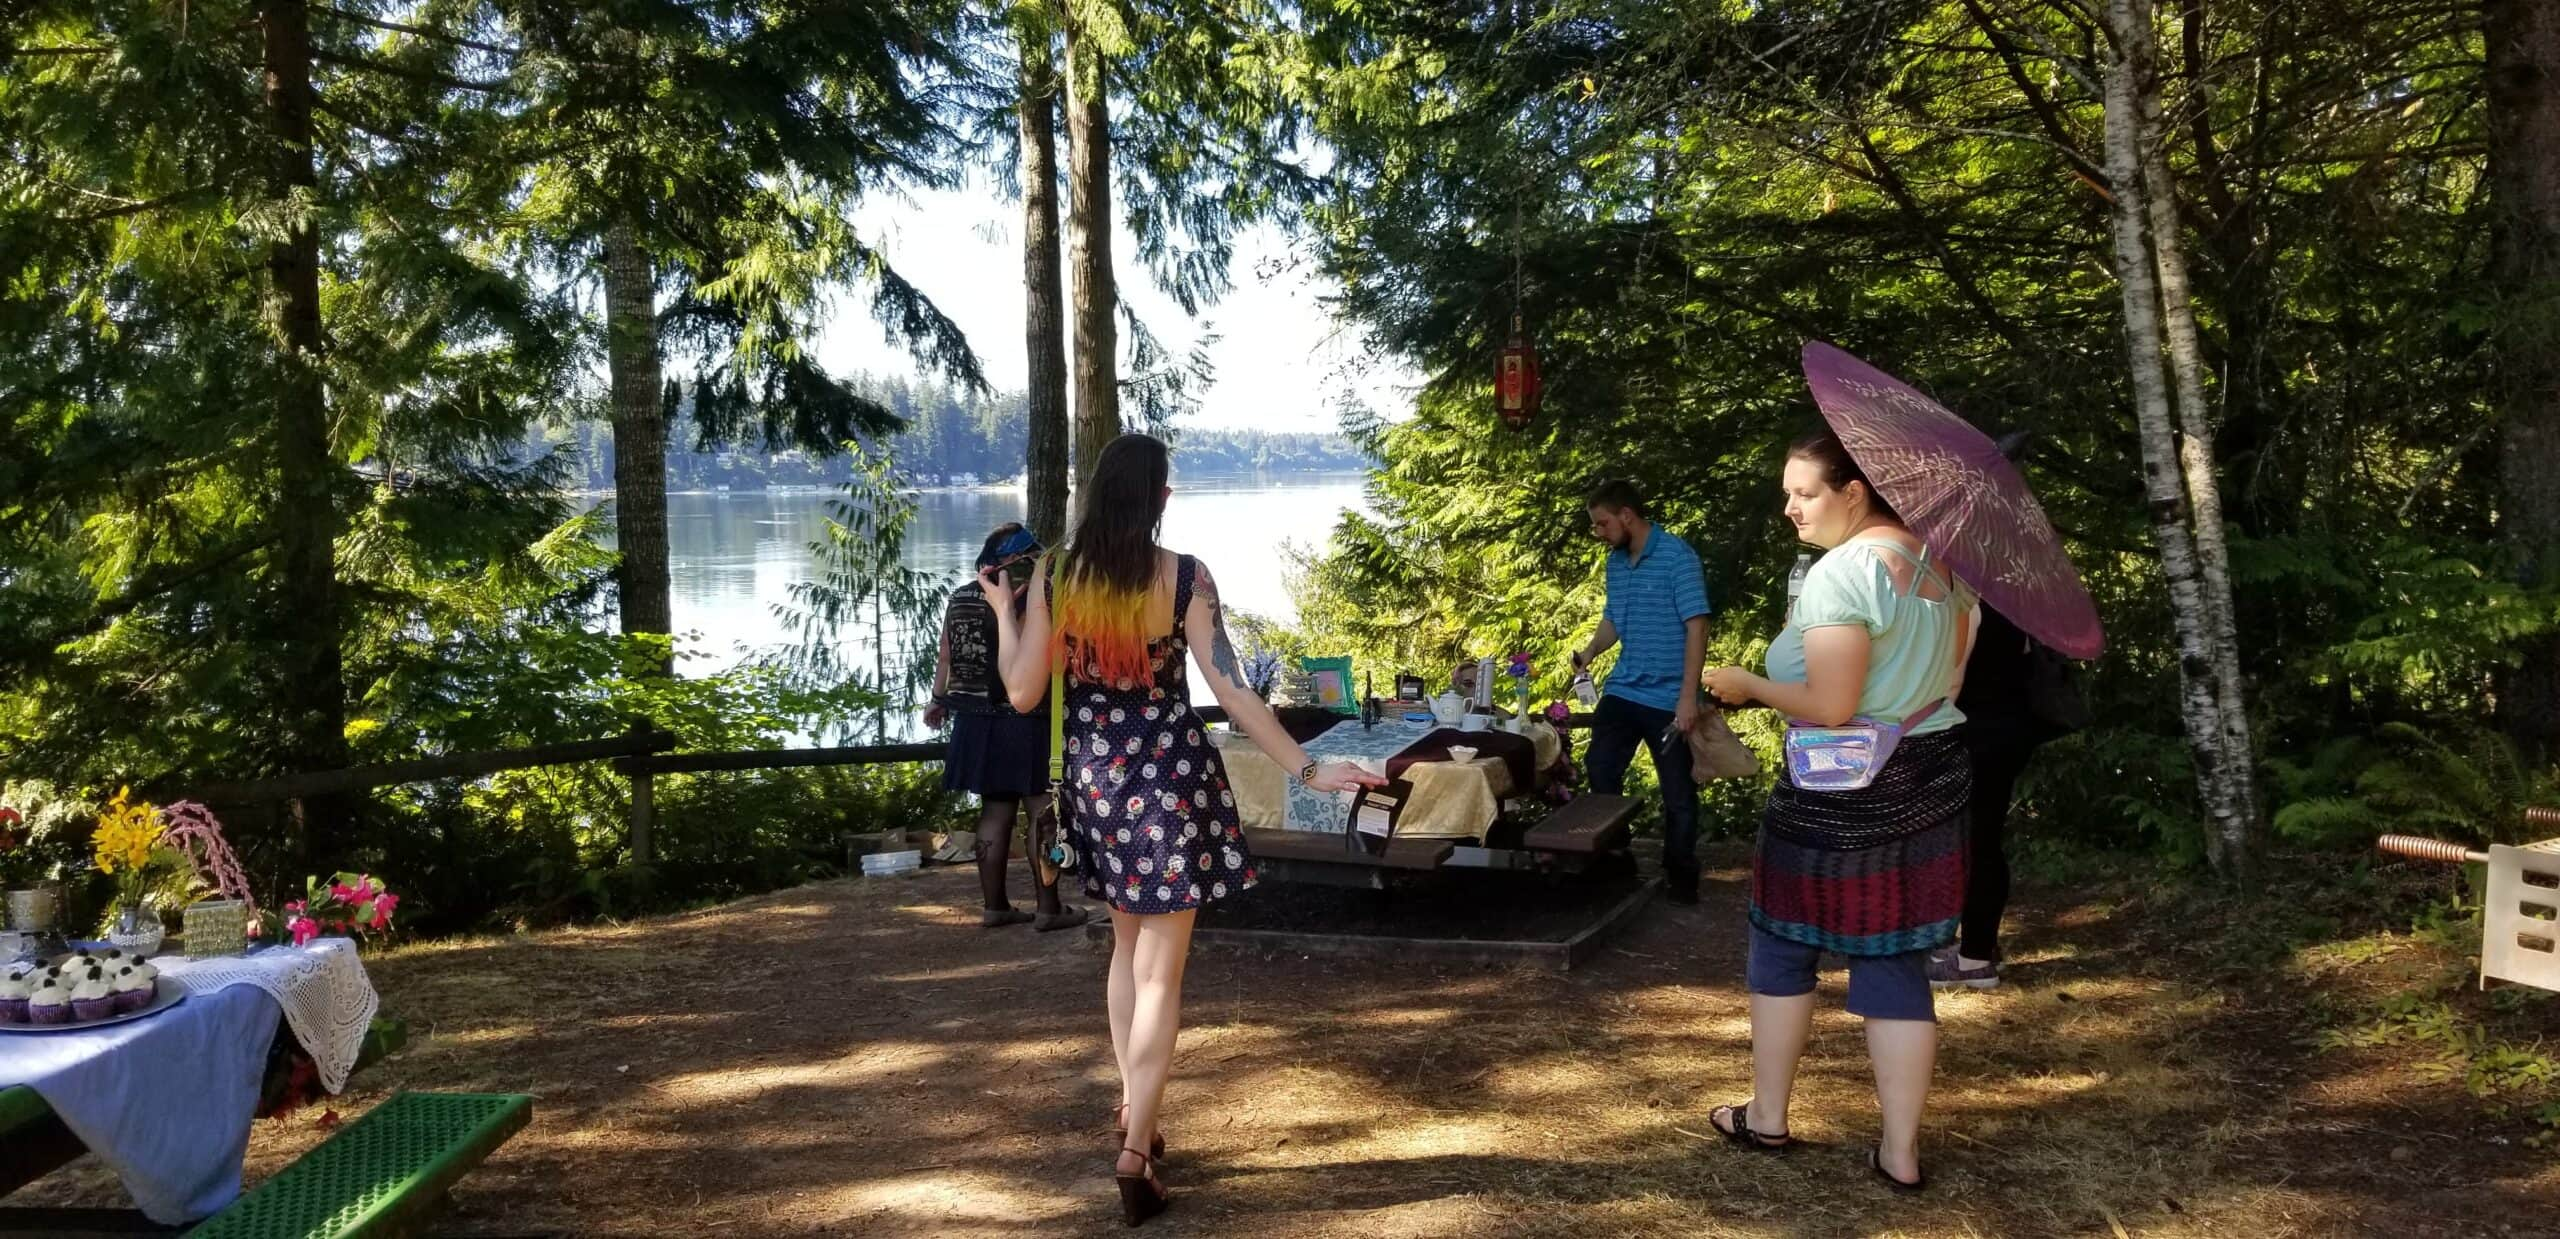 A photo of a clearing surrounded by trees, with a bay in the background. There is a decorated table with tea and goodies, and the author's back is to the camera as she walks up to the table.